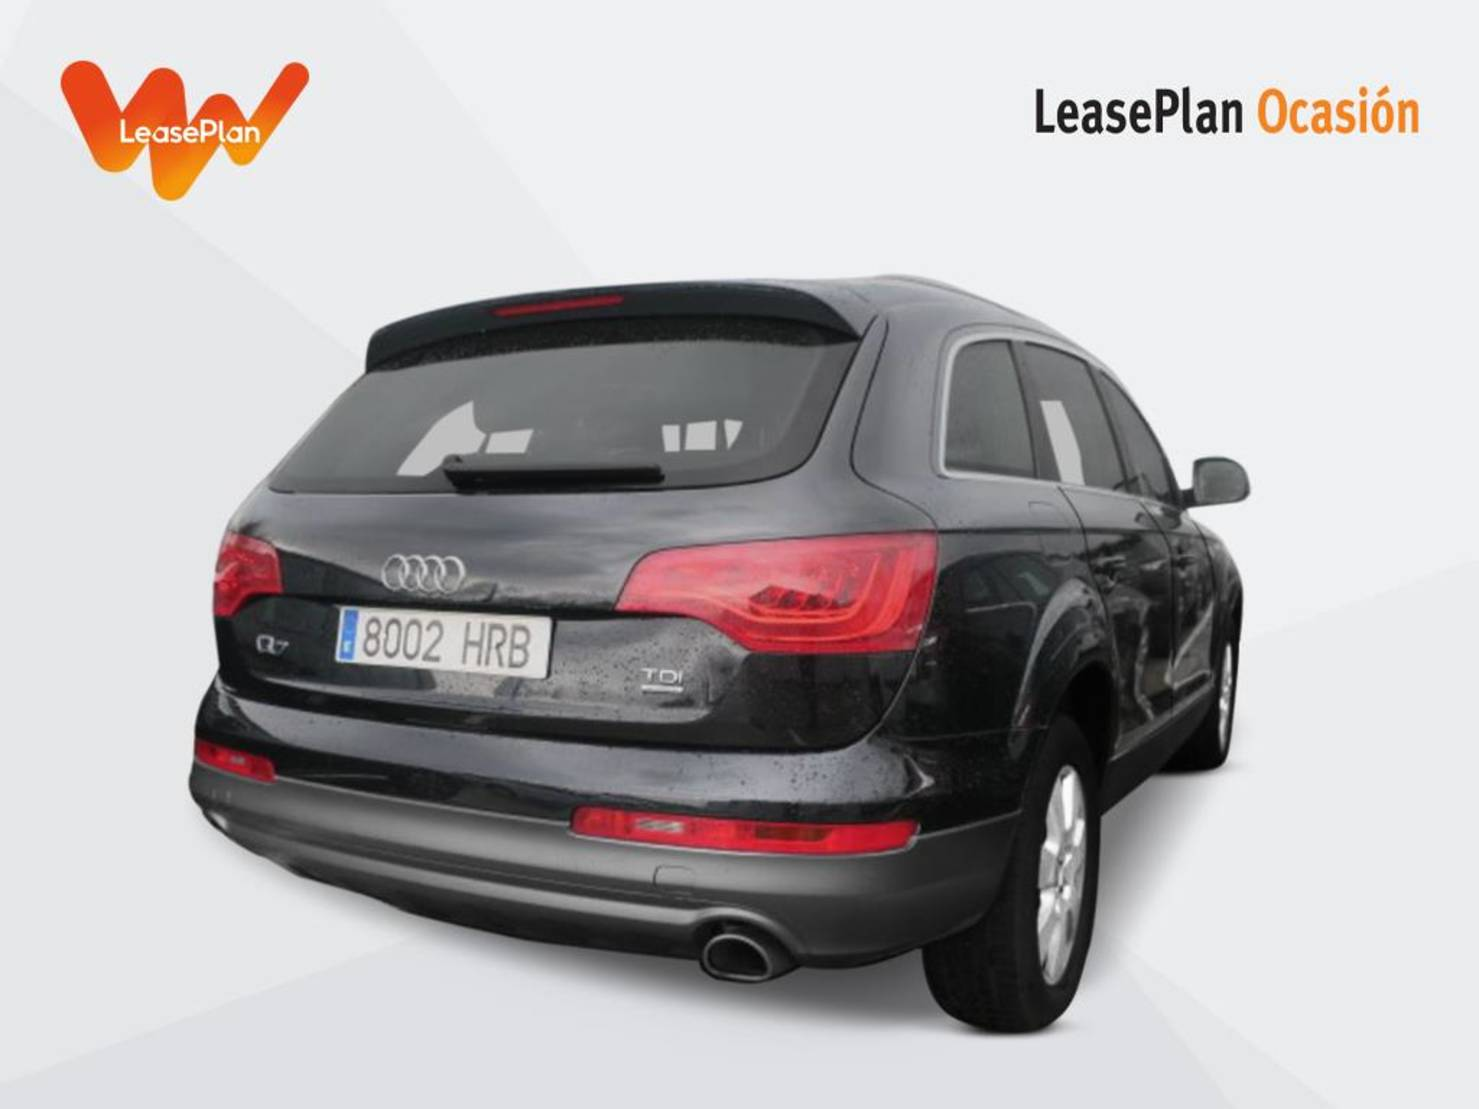 Audi Q7 3.0 Tdi 204cv Quattro Tiptronic Advance detail2